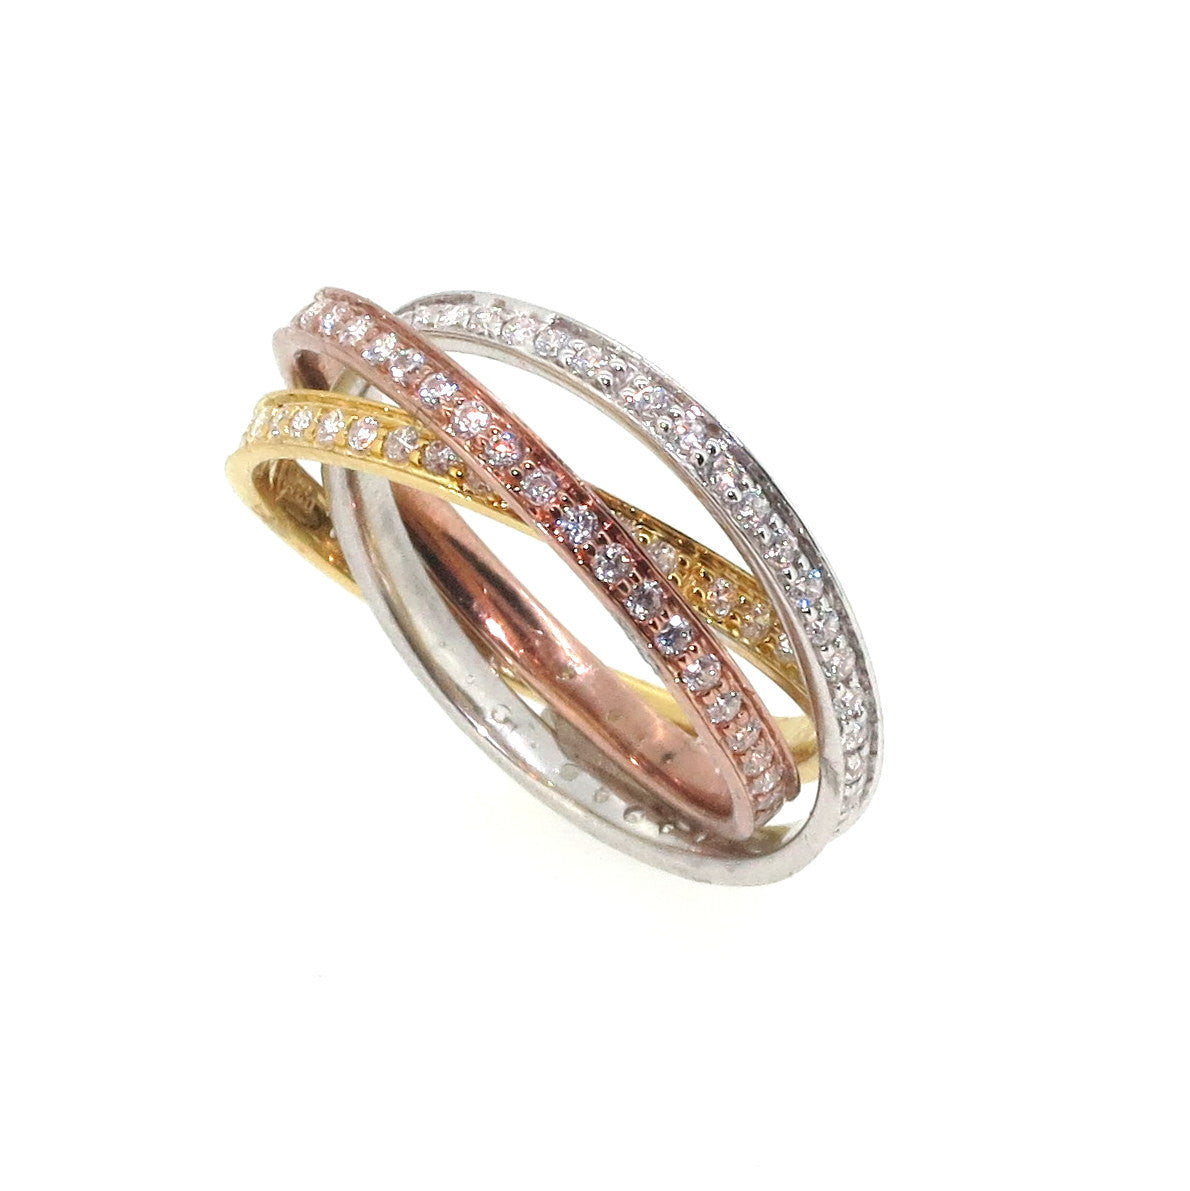 Triple Tone, Triple Wedding Band Intertwined Eternity Ring, Diamonds on Rose Gold, Yellow Gold & White Gold, Wedding/Anniversary Ring, Cocktail Ring - 69755